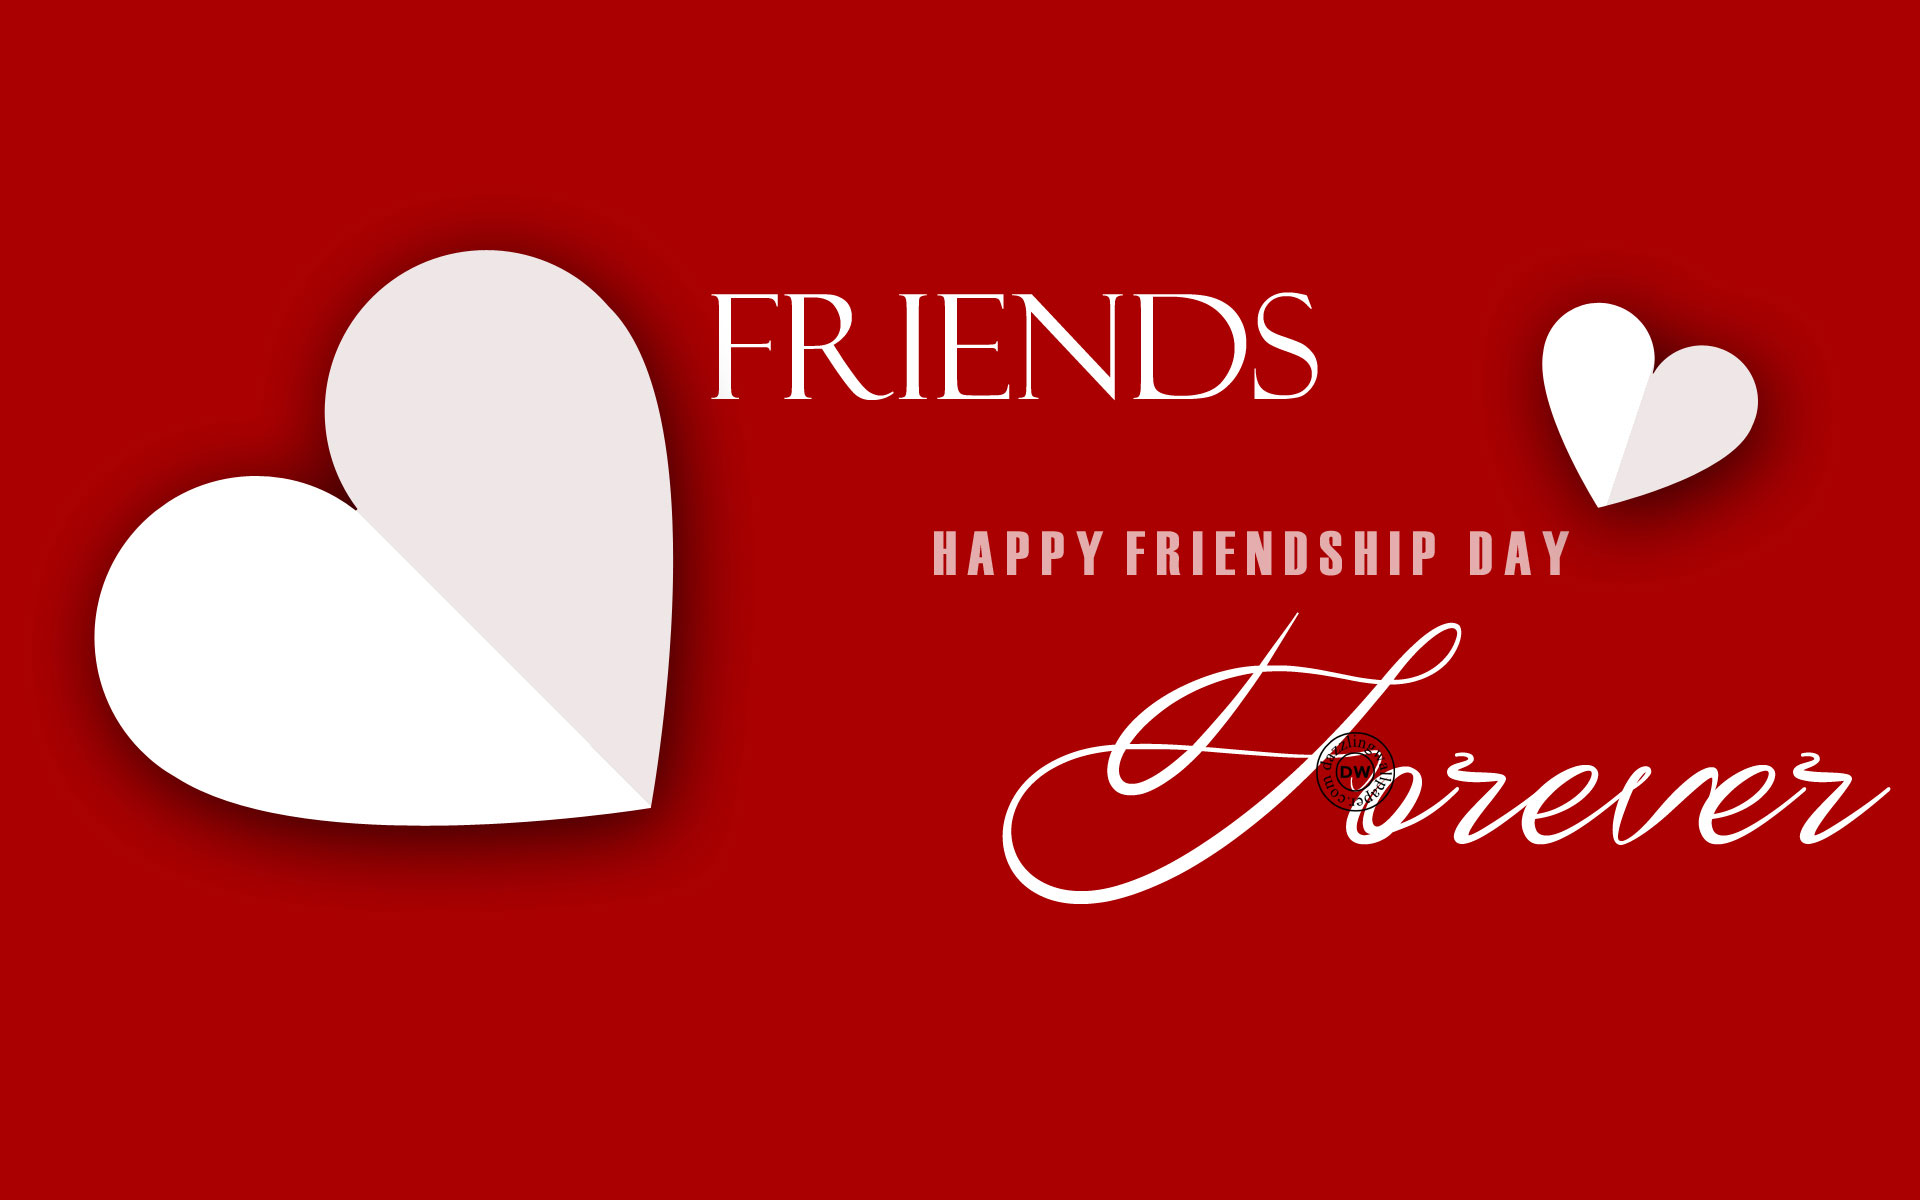 Friends Forever Happy Friendship Day Wallpaper